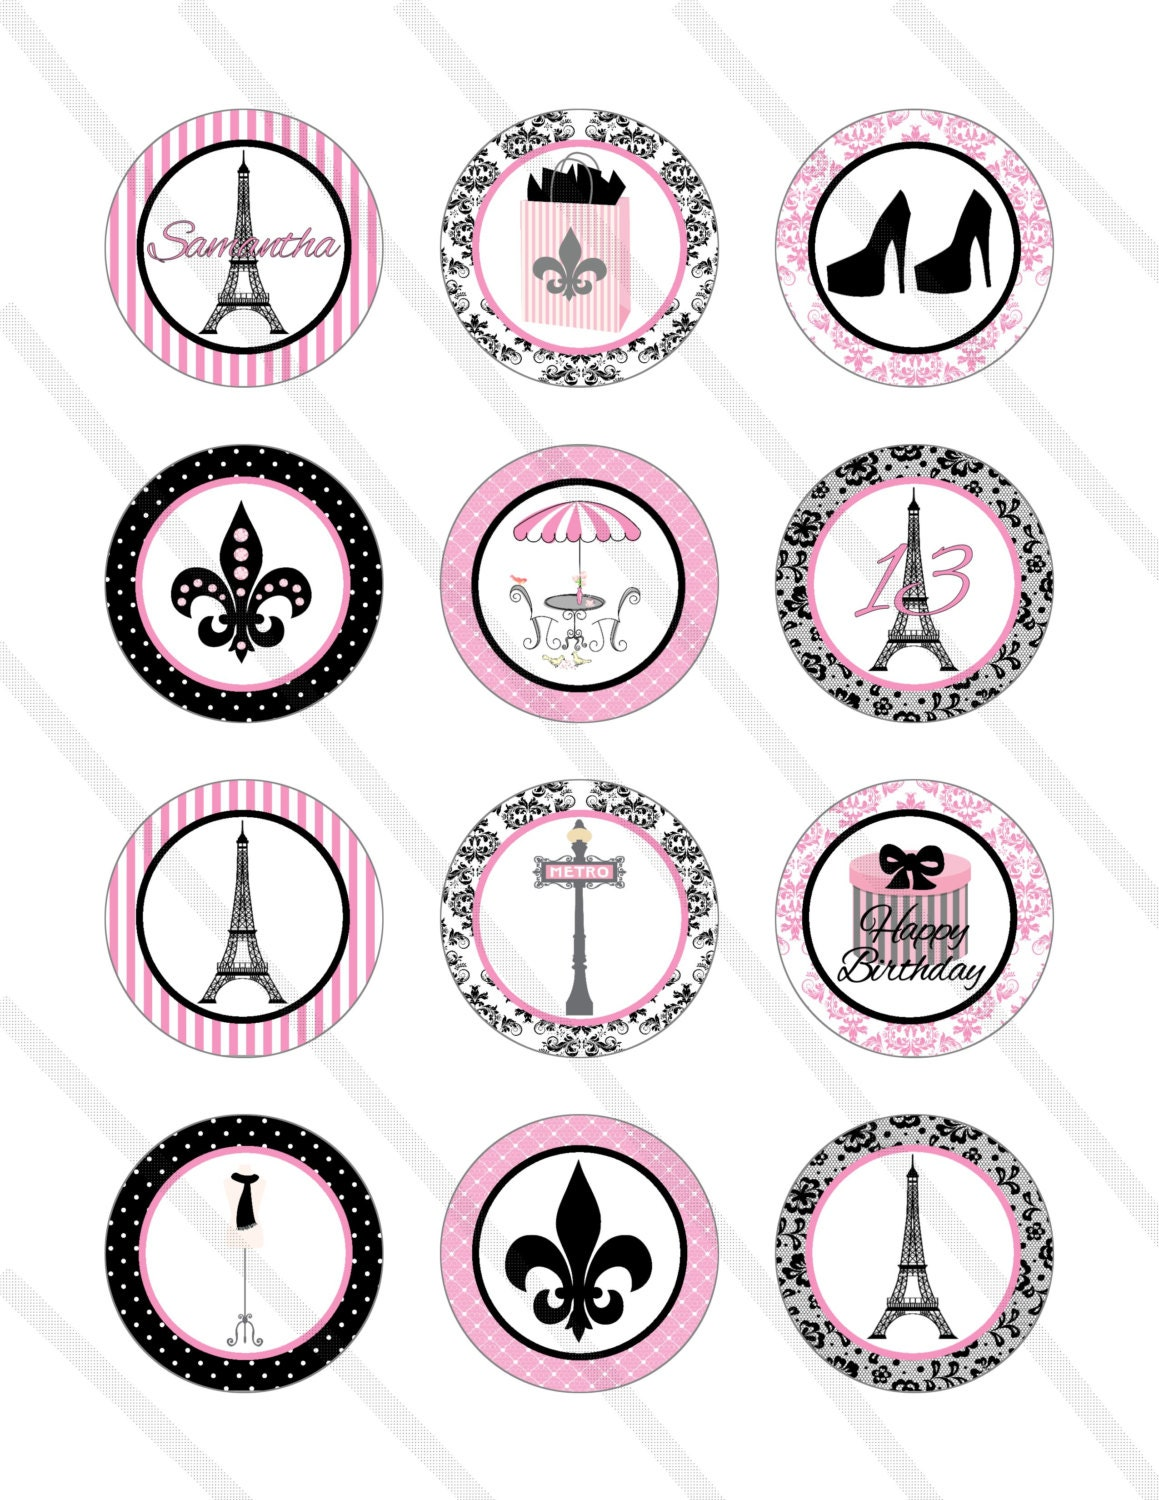 Paris Eiffel Tower Birthday Party 2 Inch By Krittskreations